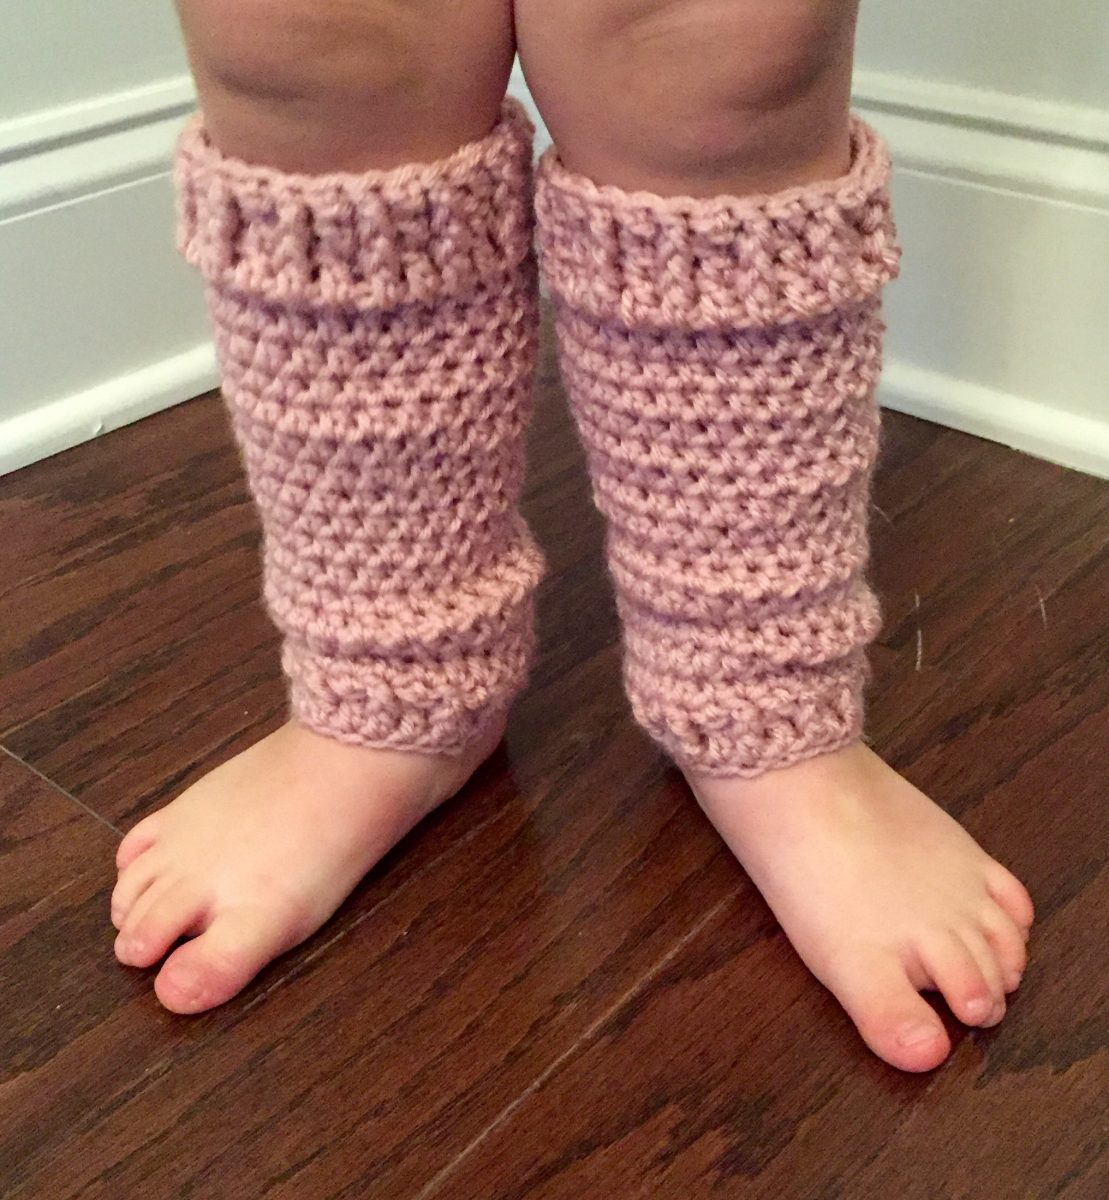 on your toes legwarmers for toddlers by little monkeys designs